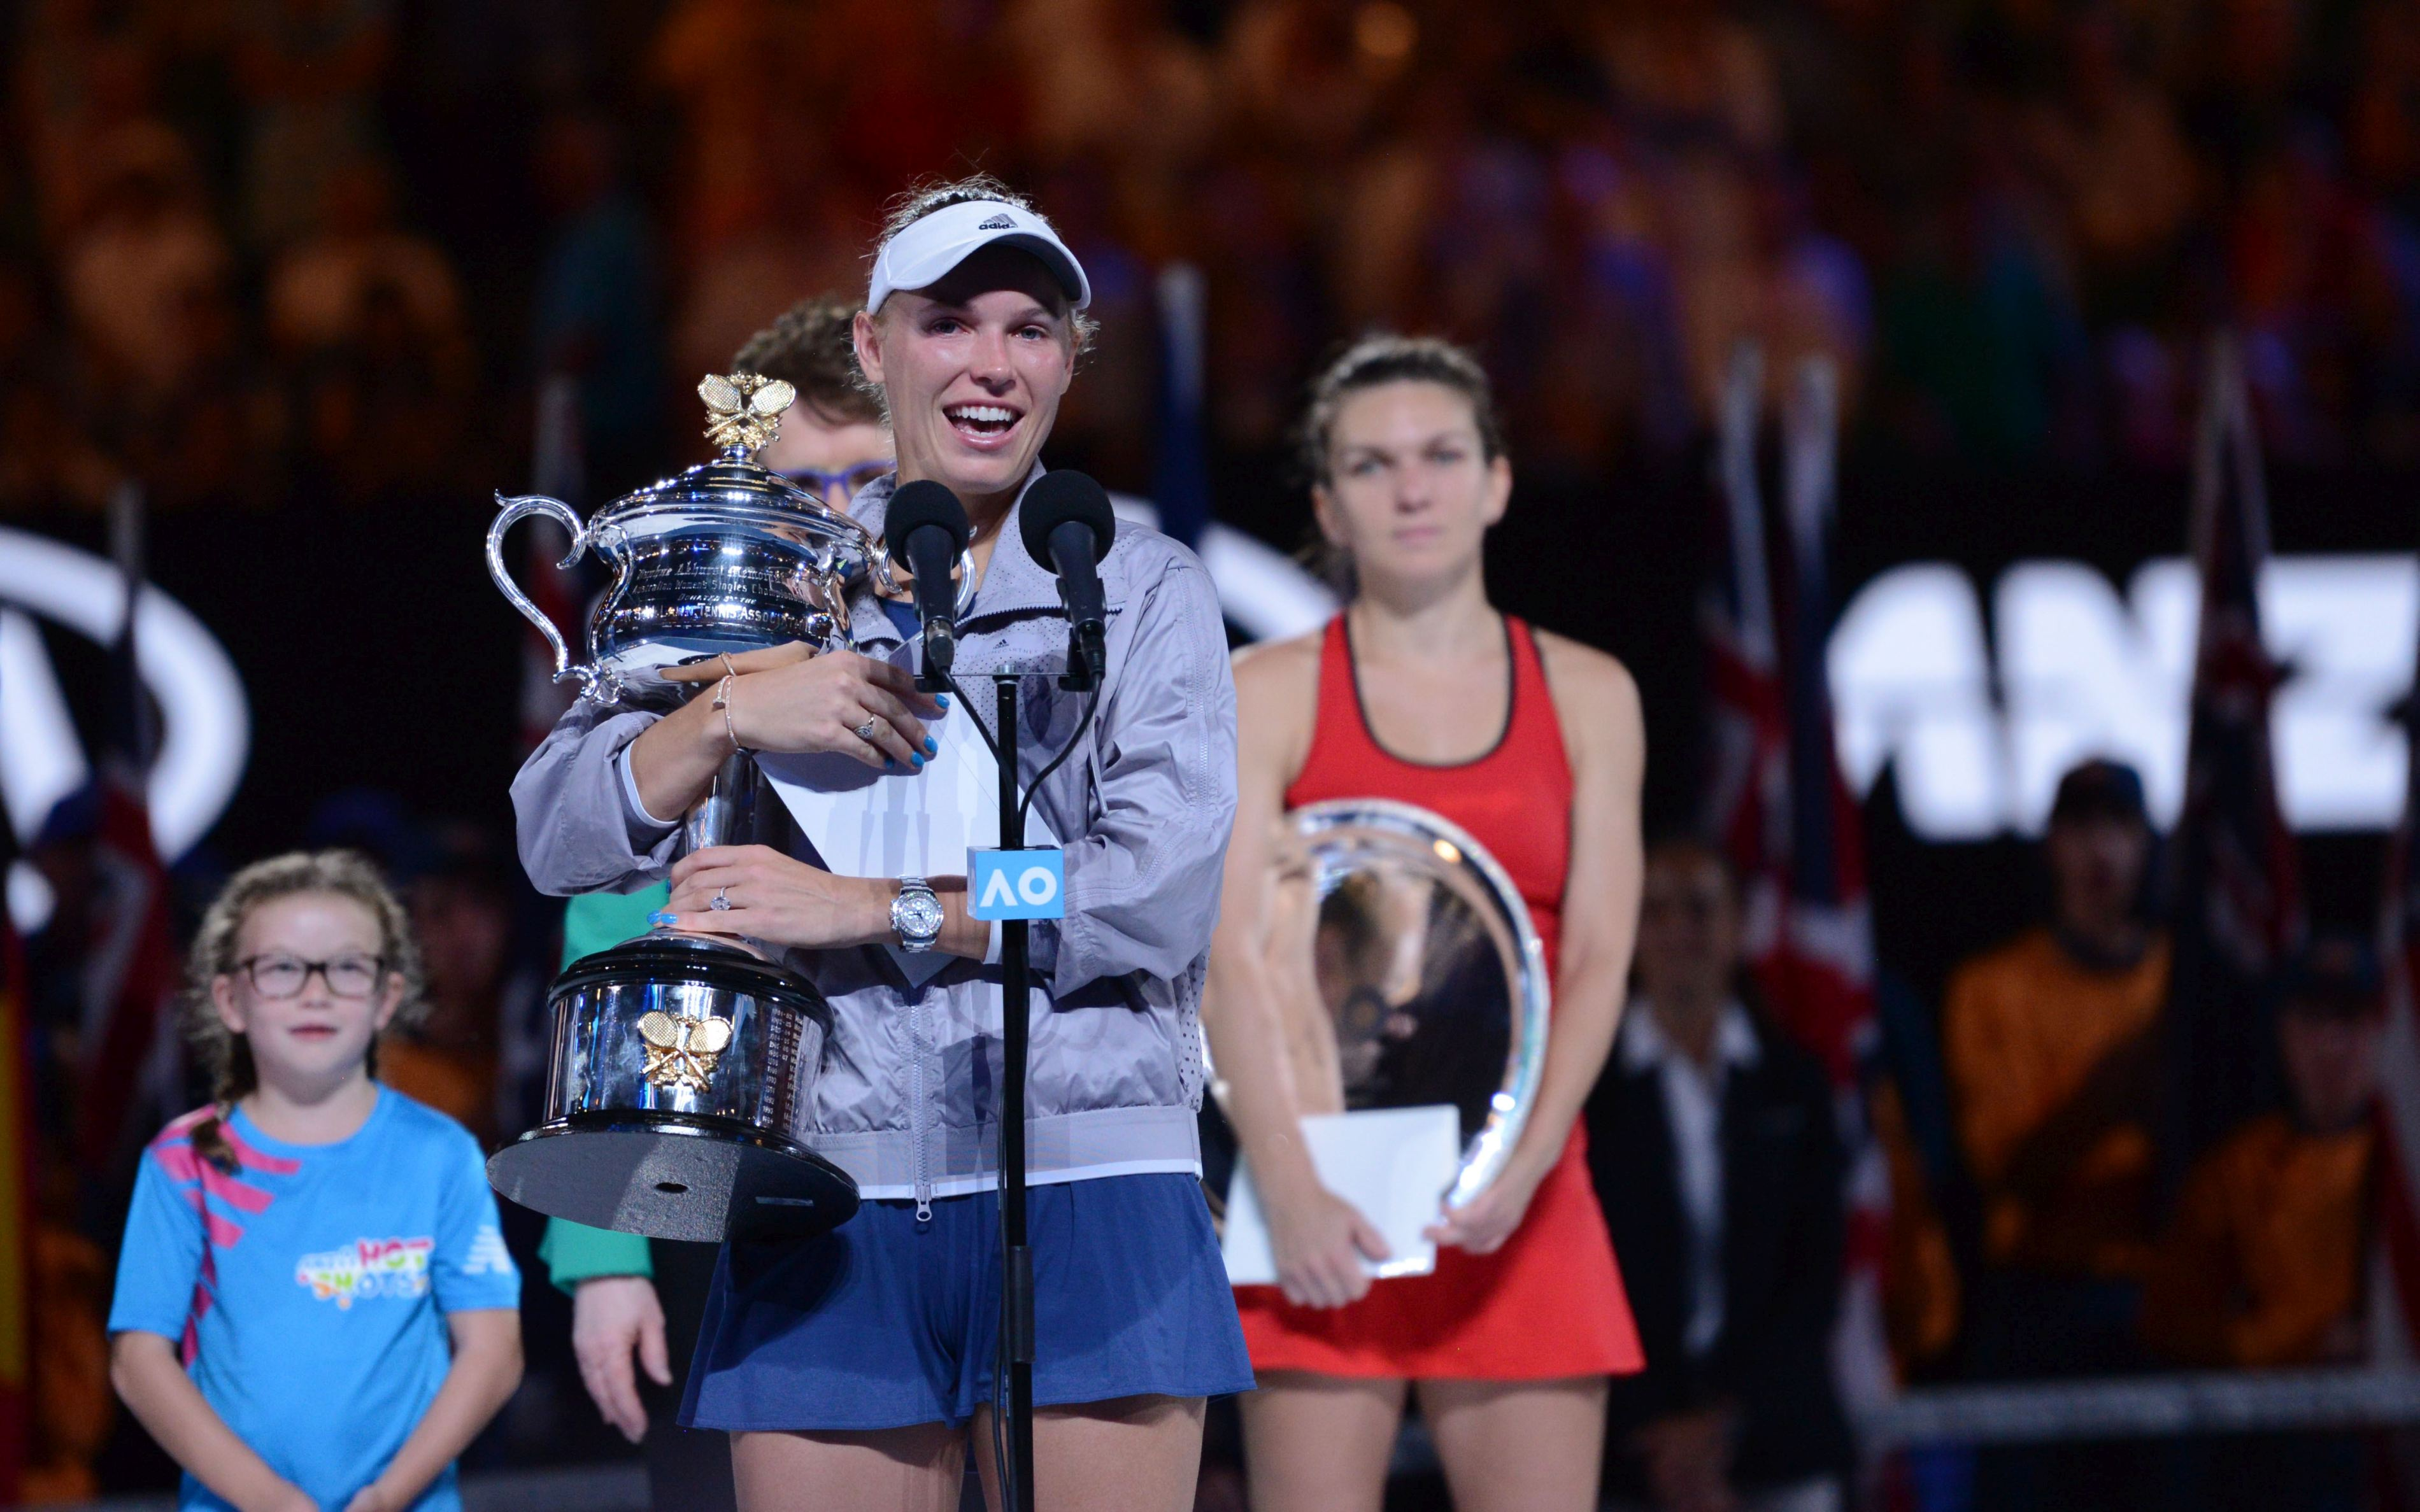 MELBOURNE, AUSTRALIA - JANUARY 27: Caroline Wozniacki of Denmark speaks after winning the women's singles final against Simona Halep (rear) of Romania on day 13 of the 2018 Australian Open at Melbourne Park in Melbourne, Australia on January 27, 2018. Caroline Wozniacki won the match with 2-1. Recep Sakar / Anadolu Agency